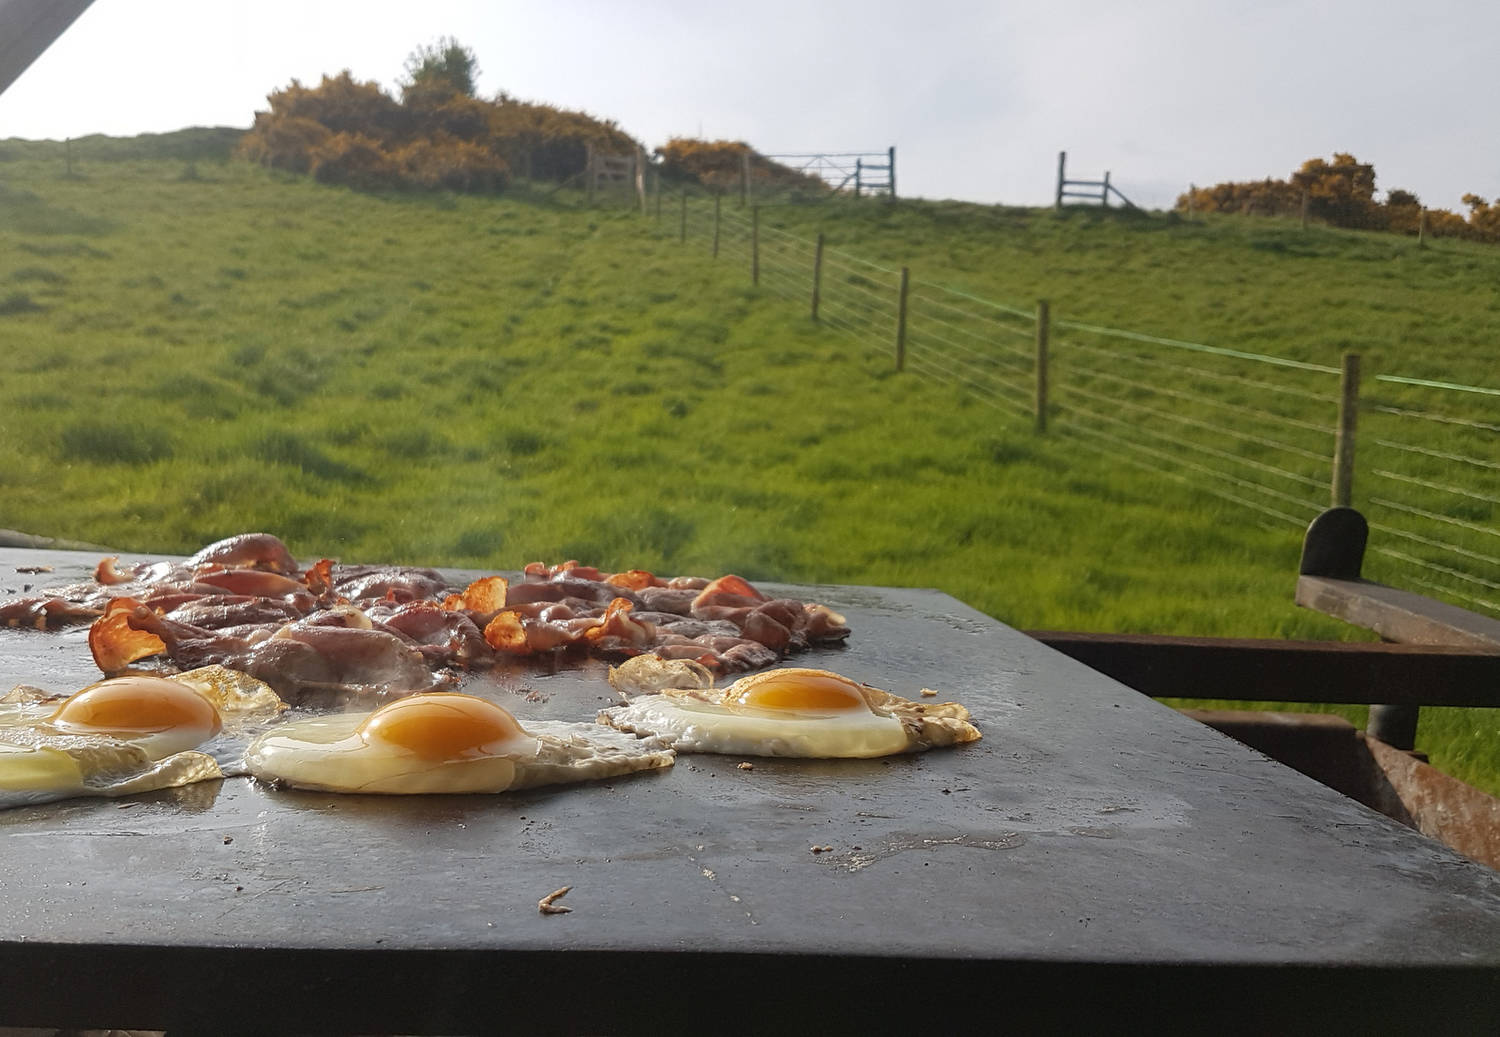 A photograph of eggs and bacon being cooked outdoors with a view of a field.